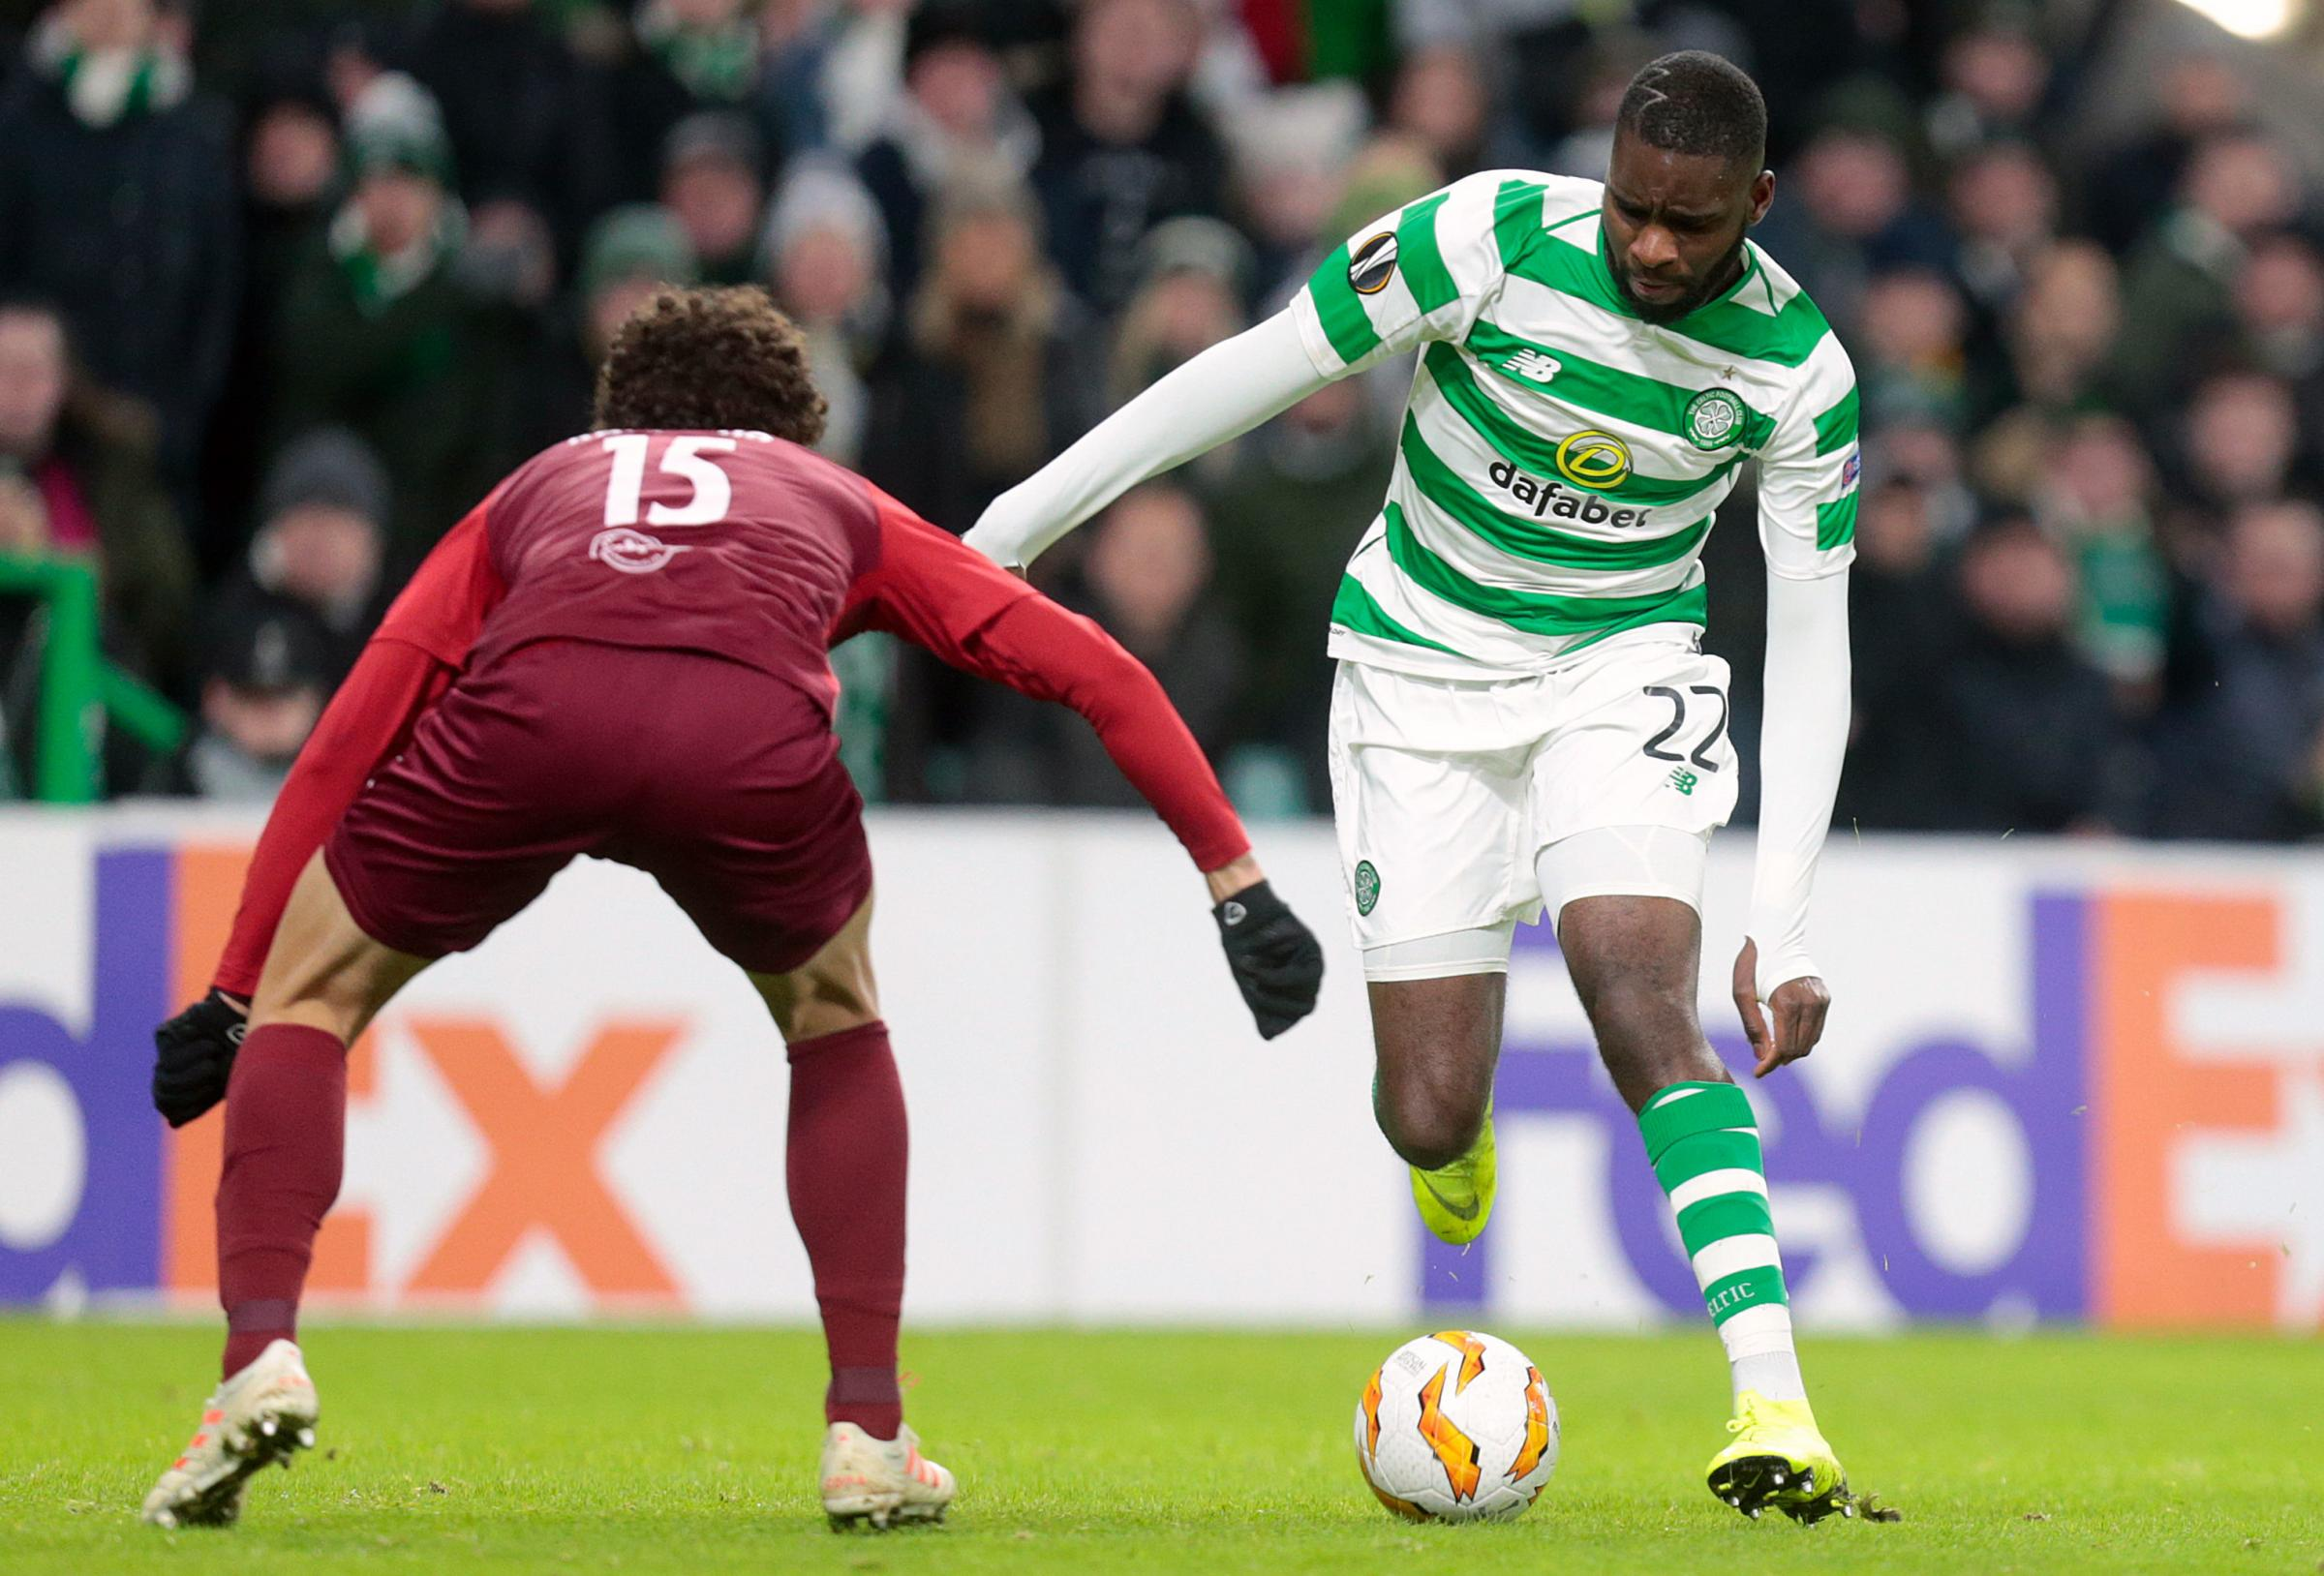 Salzburg's Andre Ramalho (left) and Celtic's Odsonne Edouard battle for the ball during the UEFA Europa League, Group B match at Celtic Park, Glasgow. PRESS ASSOCIATION Photo. Picture date: Thursday December 13, 2018. See PA story SOCCER Celtic.